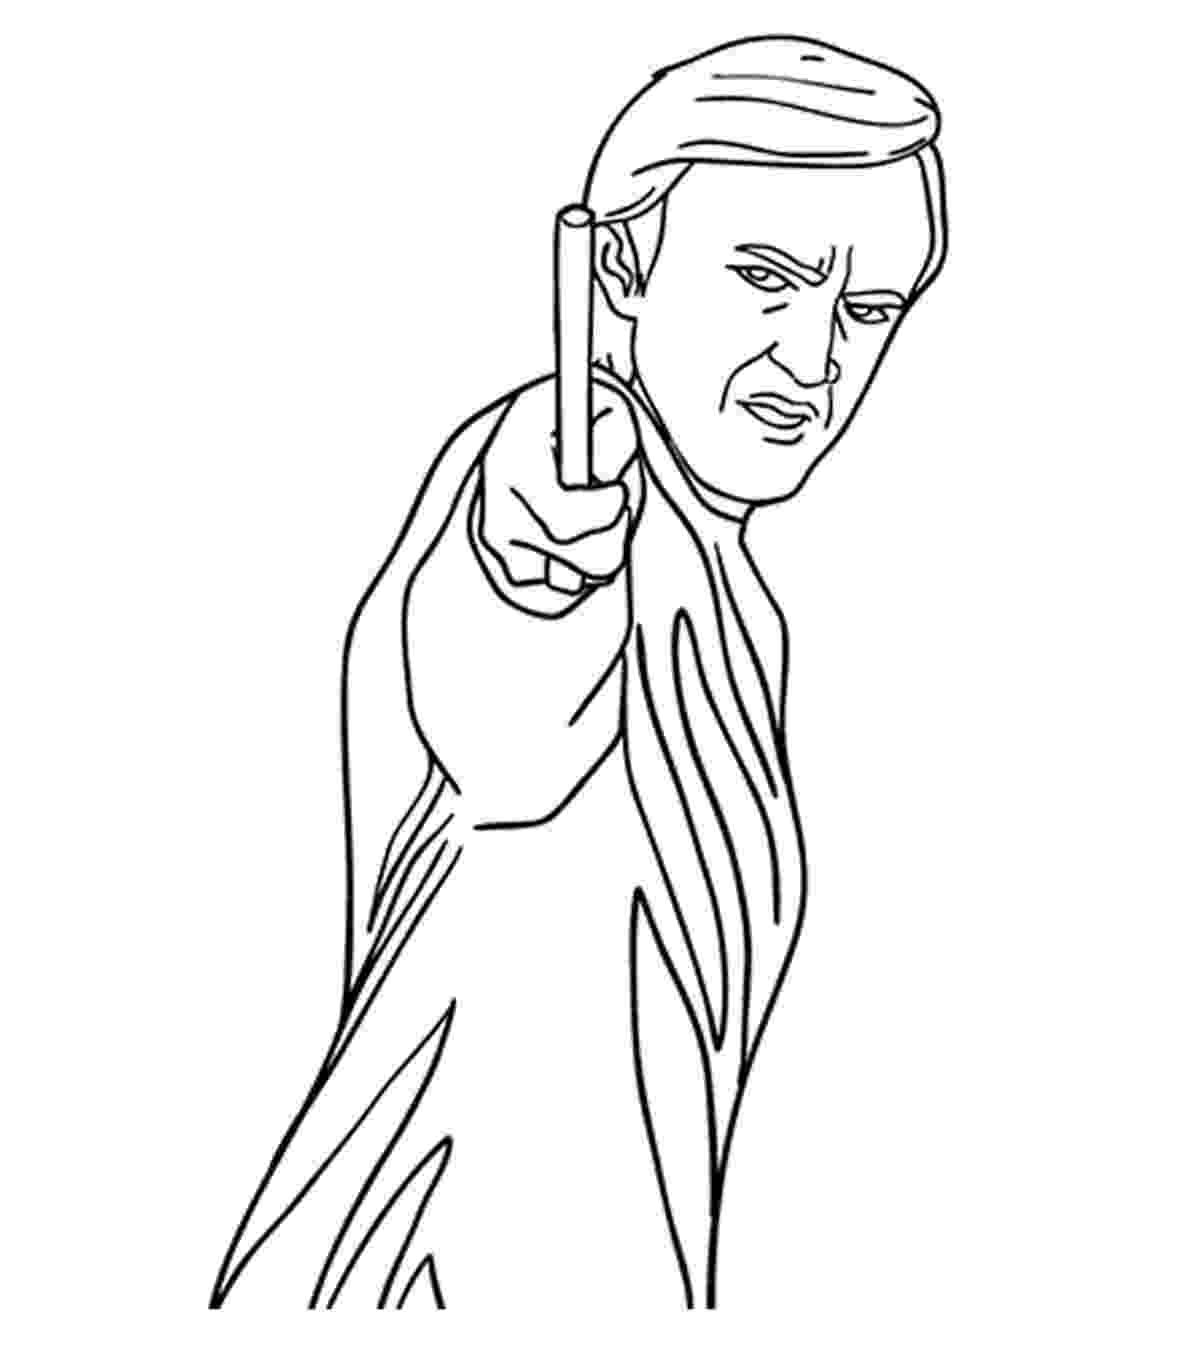 coloring book harry potter harry potter coloring pages to download and print for free potter coloring harry book